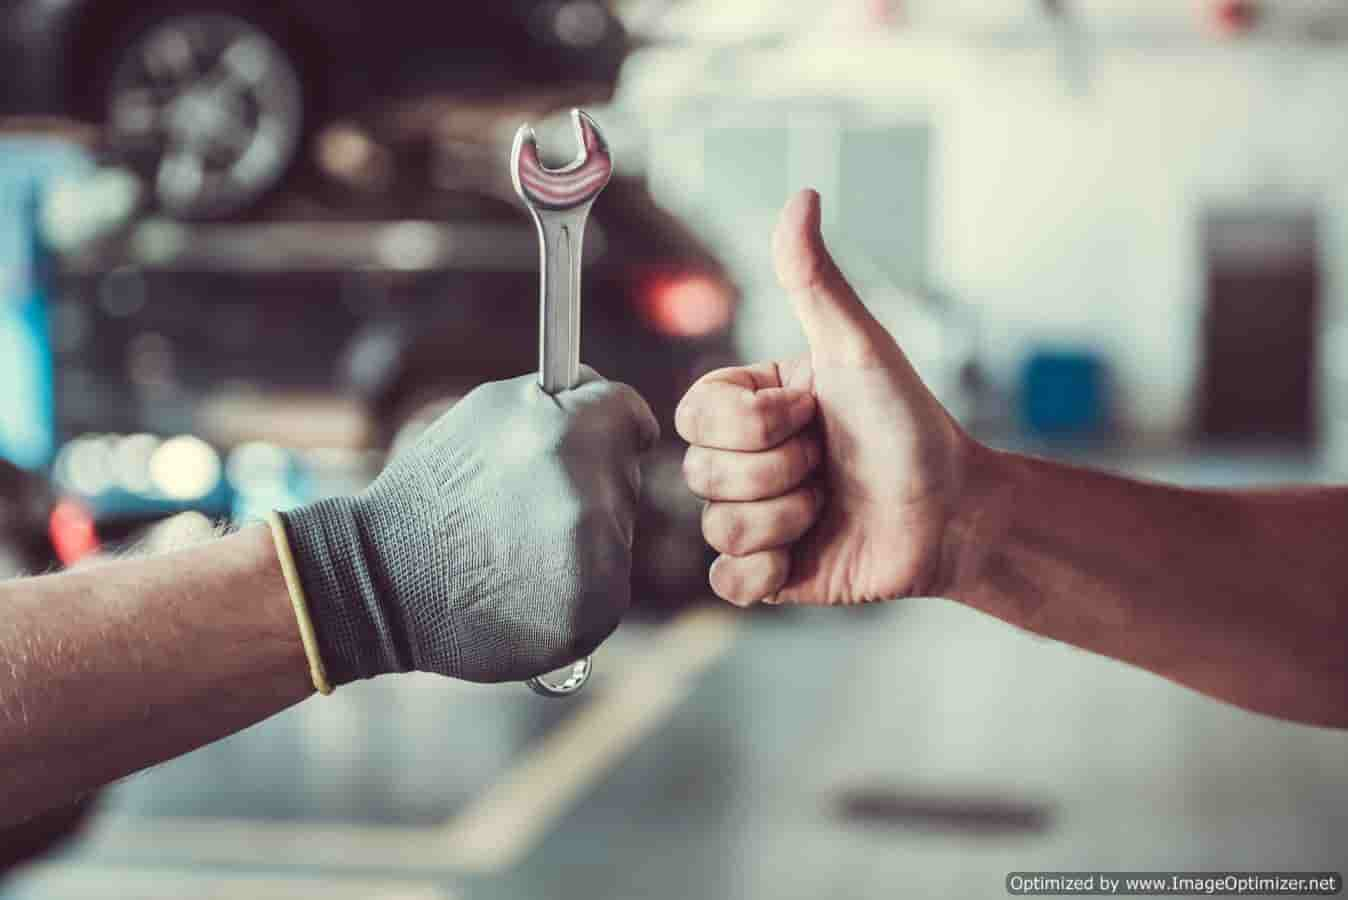 Auto repair shop: how do I find a good one?